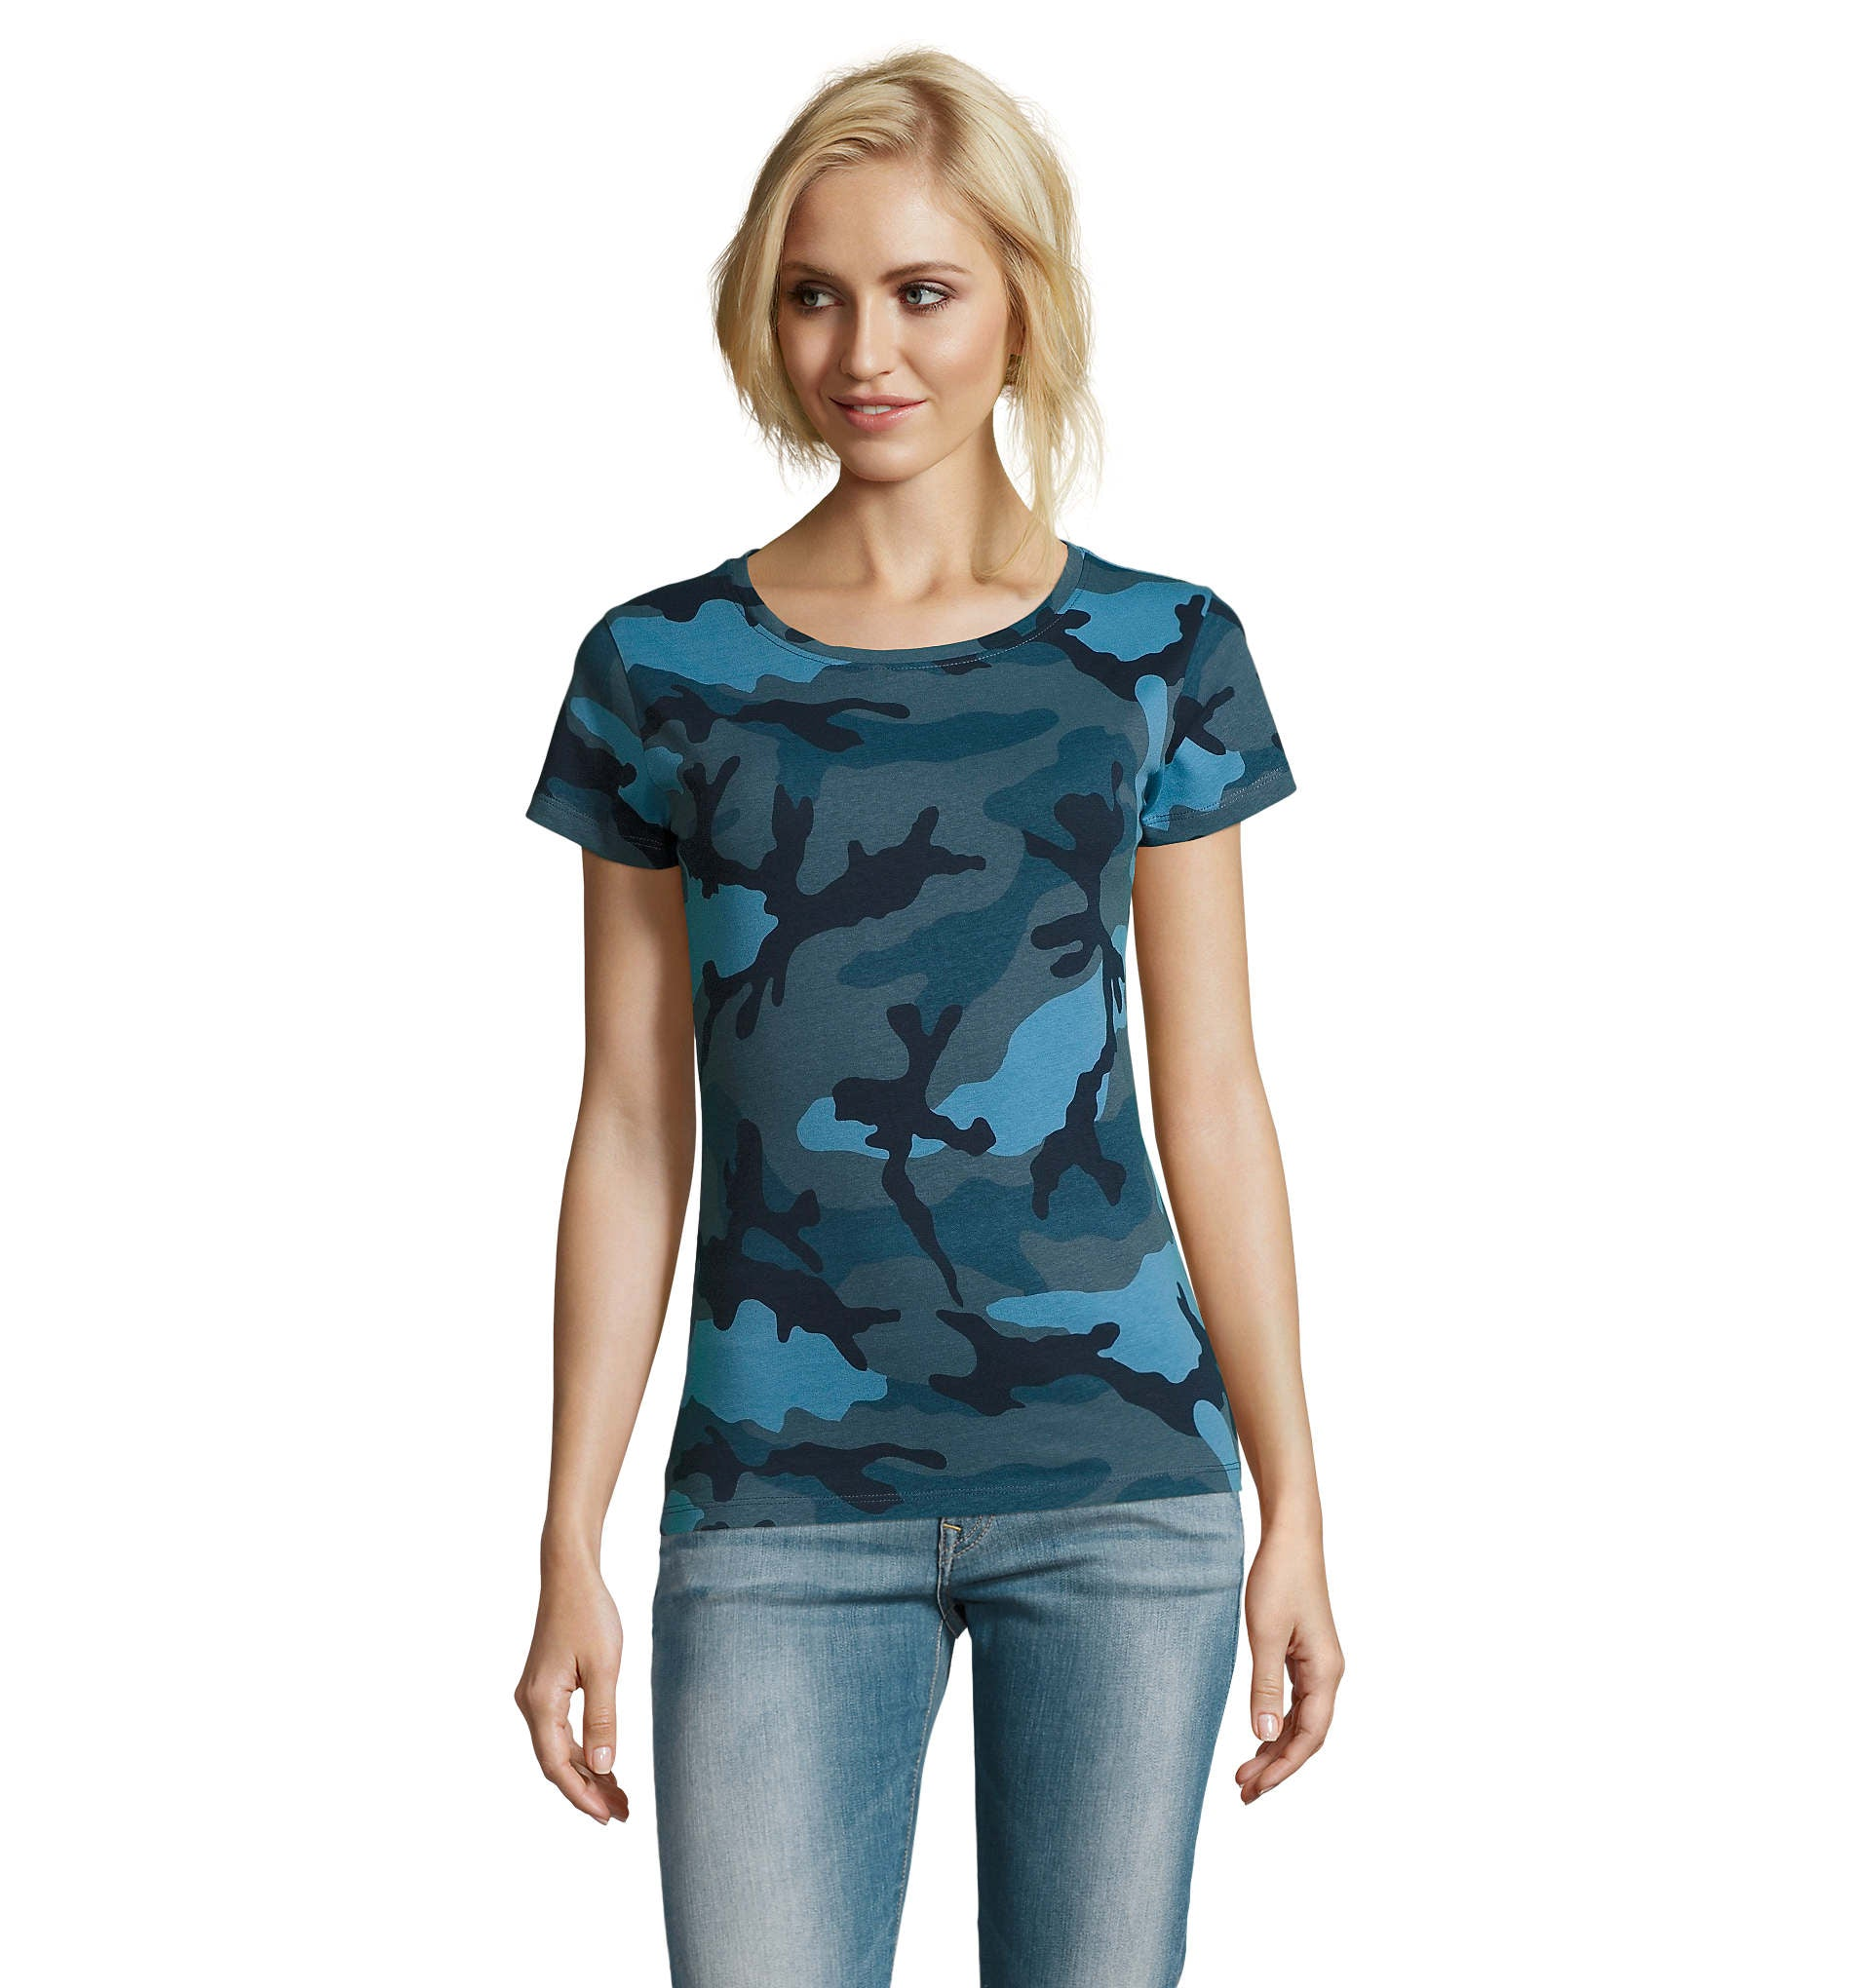 Blue Camo Printed Ladies T-Shirt LTS-1187